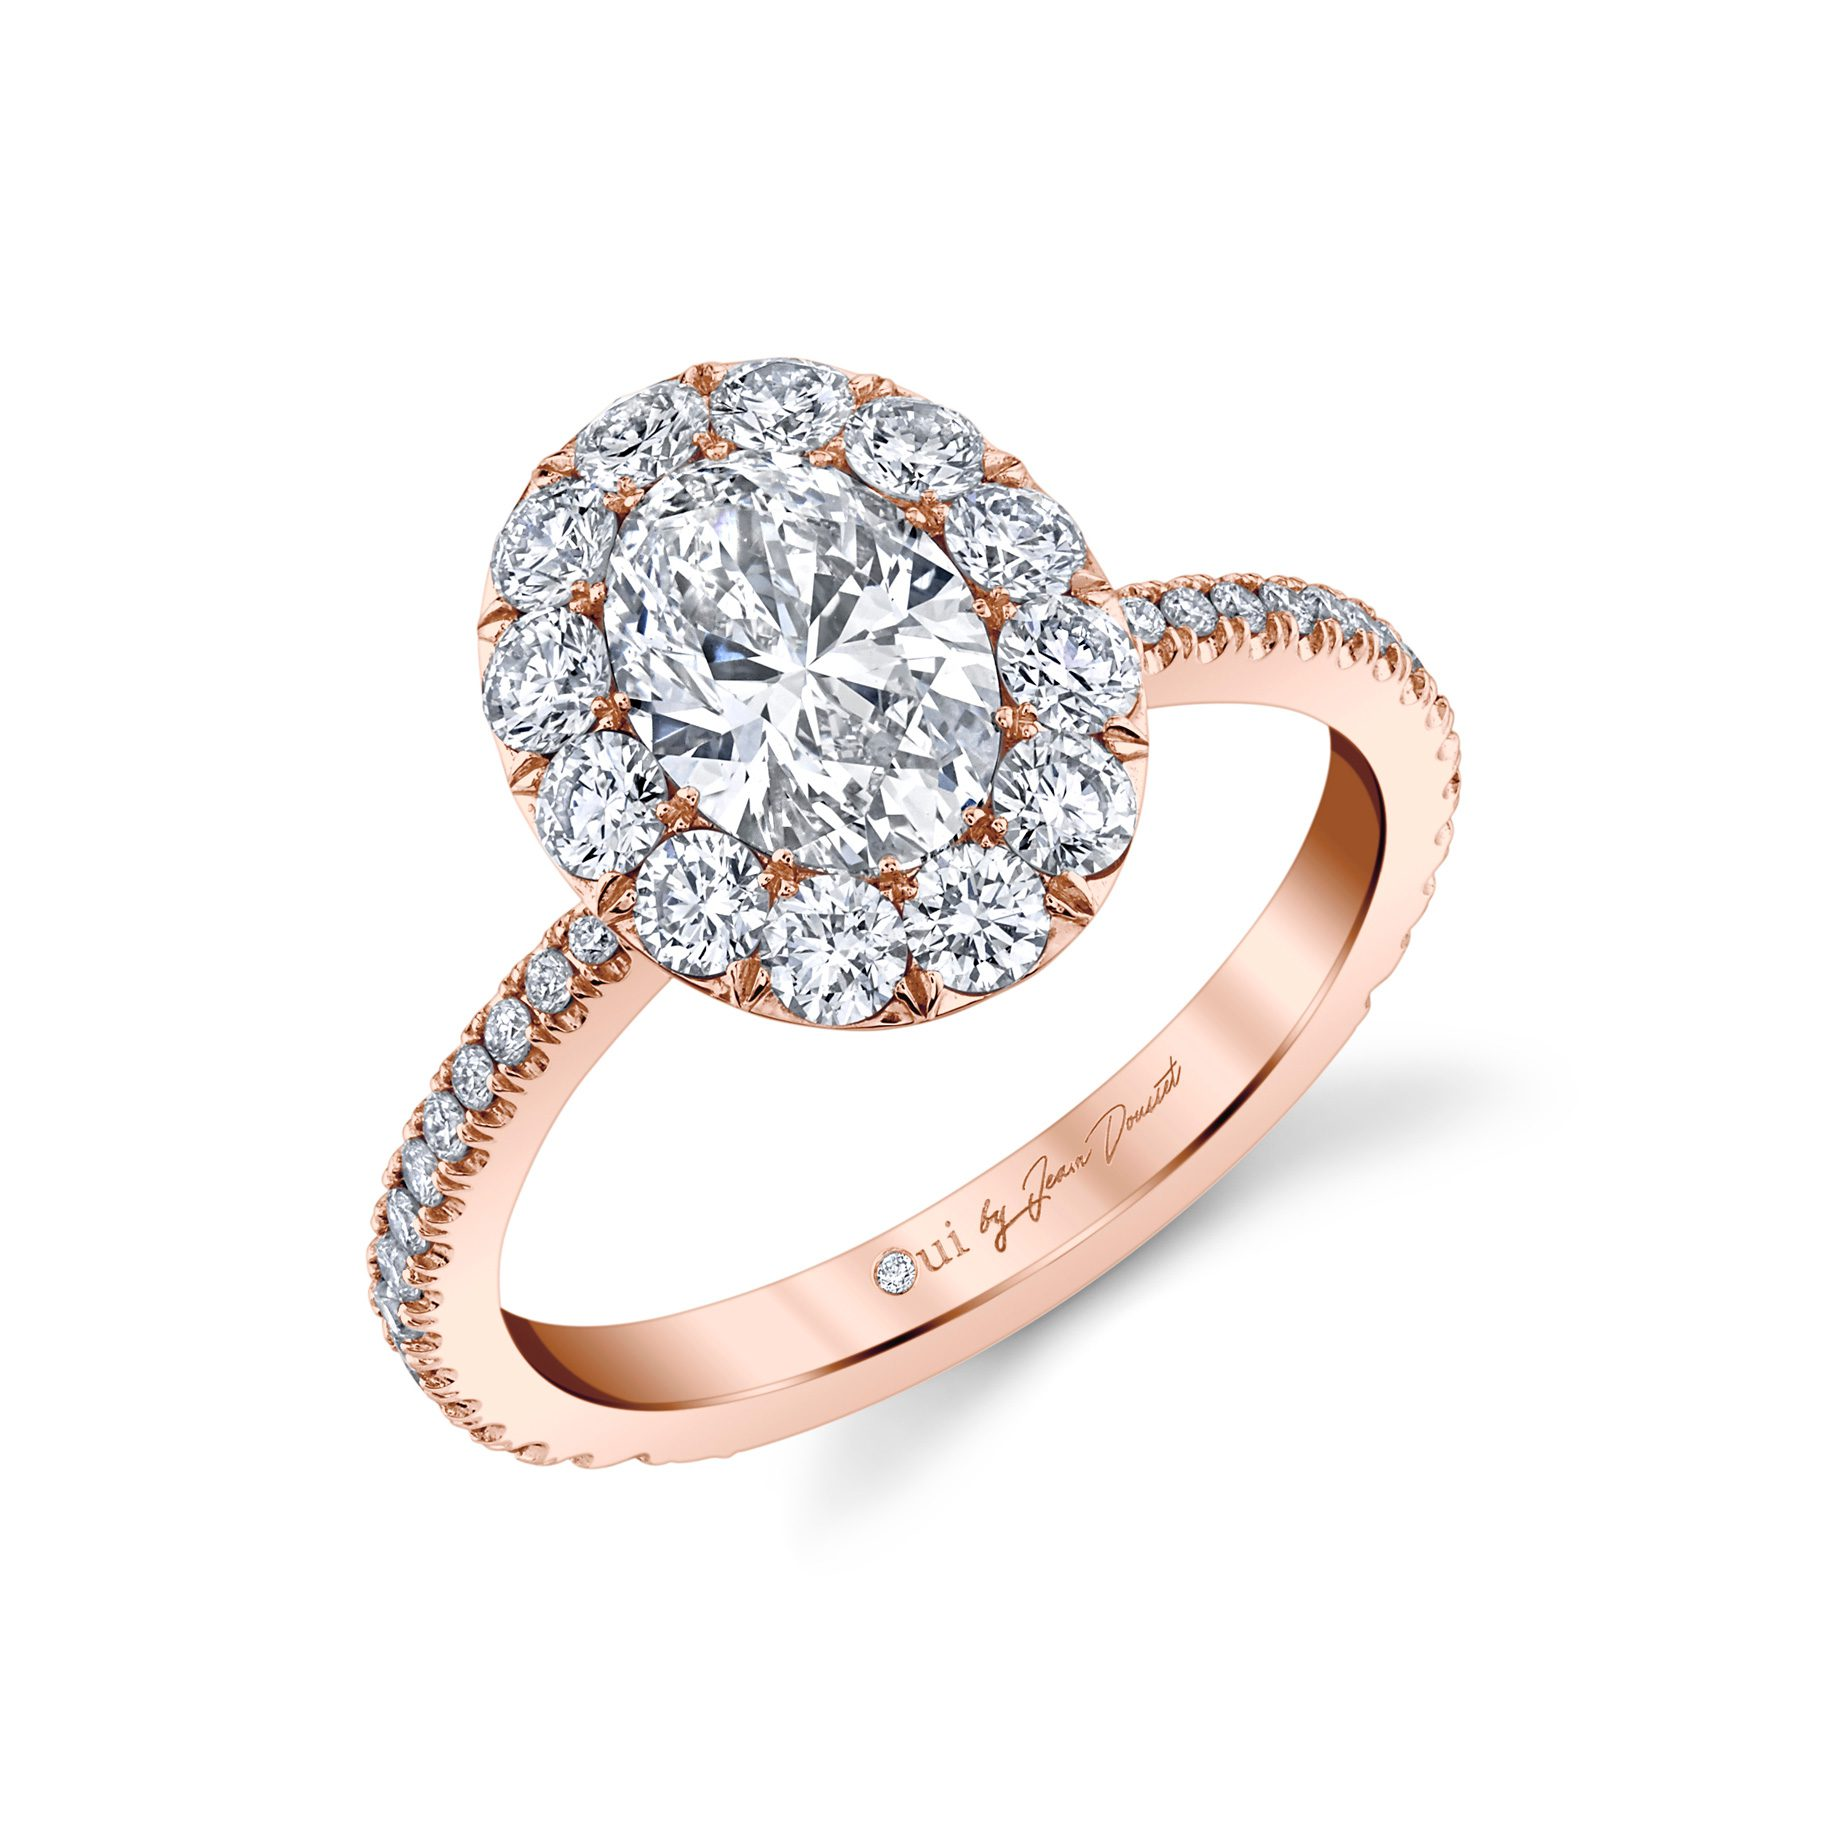 Eloise Oval Seamless Solitaire® Engagement Ring with diamond pavé in 18k Rose Gold Profile View by Oui by Jean Dousset